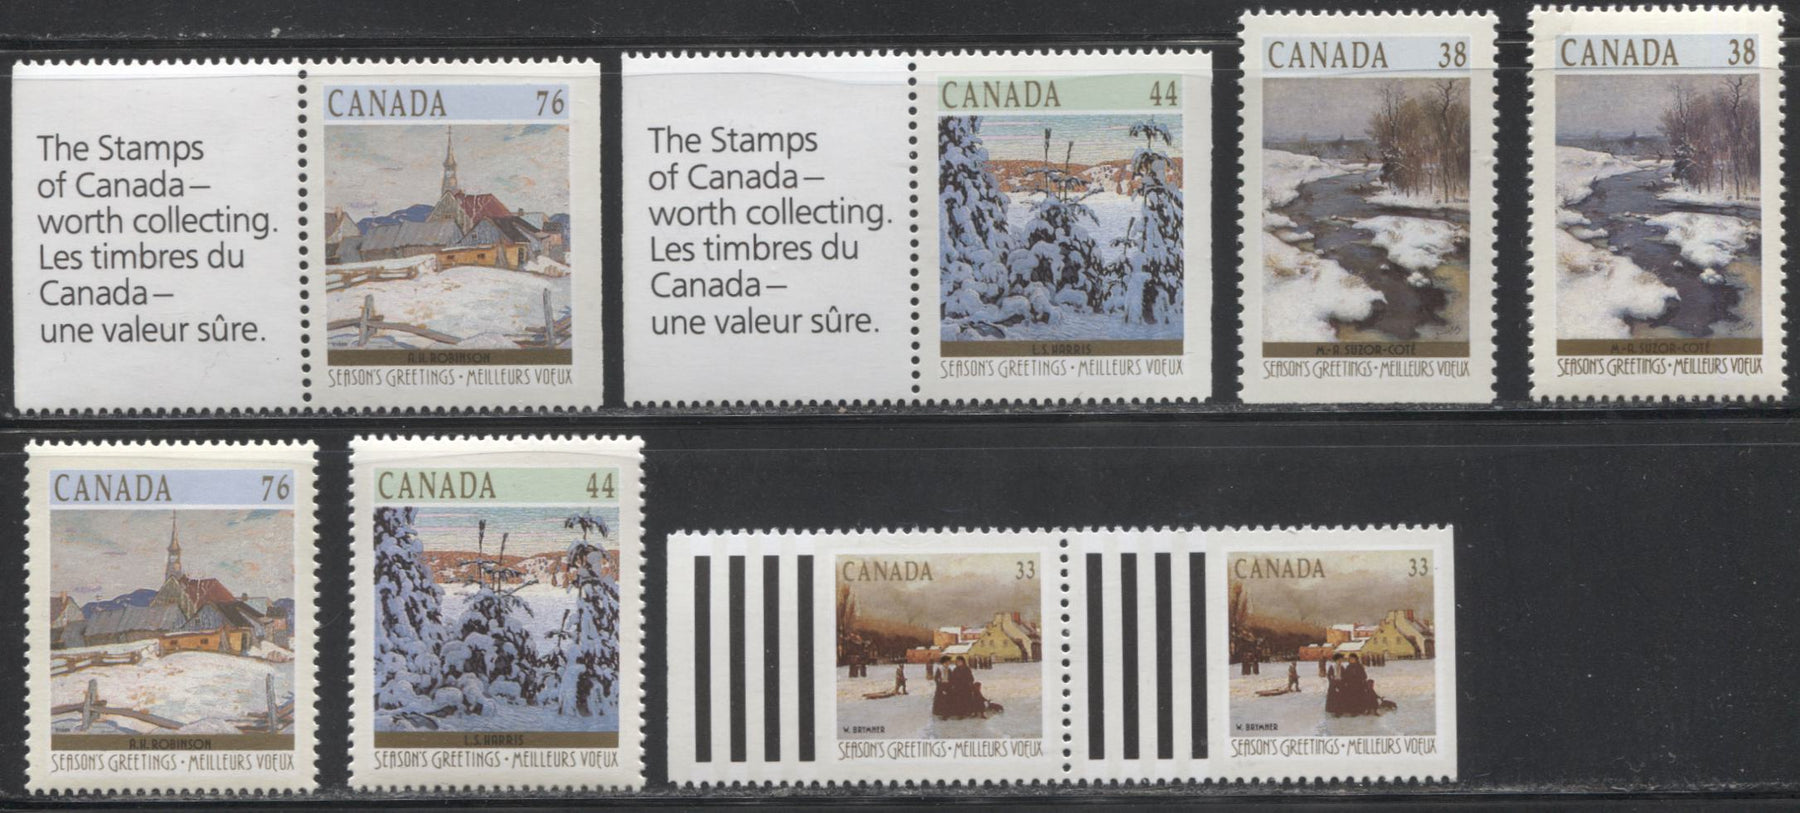 Canada #1256-1259 33c-76c Multicoloured, 1989 Christmas Issue, a VFNH Complete Set of Sheet Stamps and Booklet Pairs.